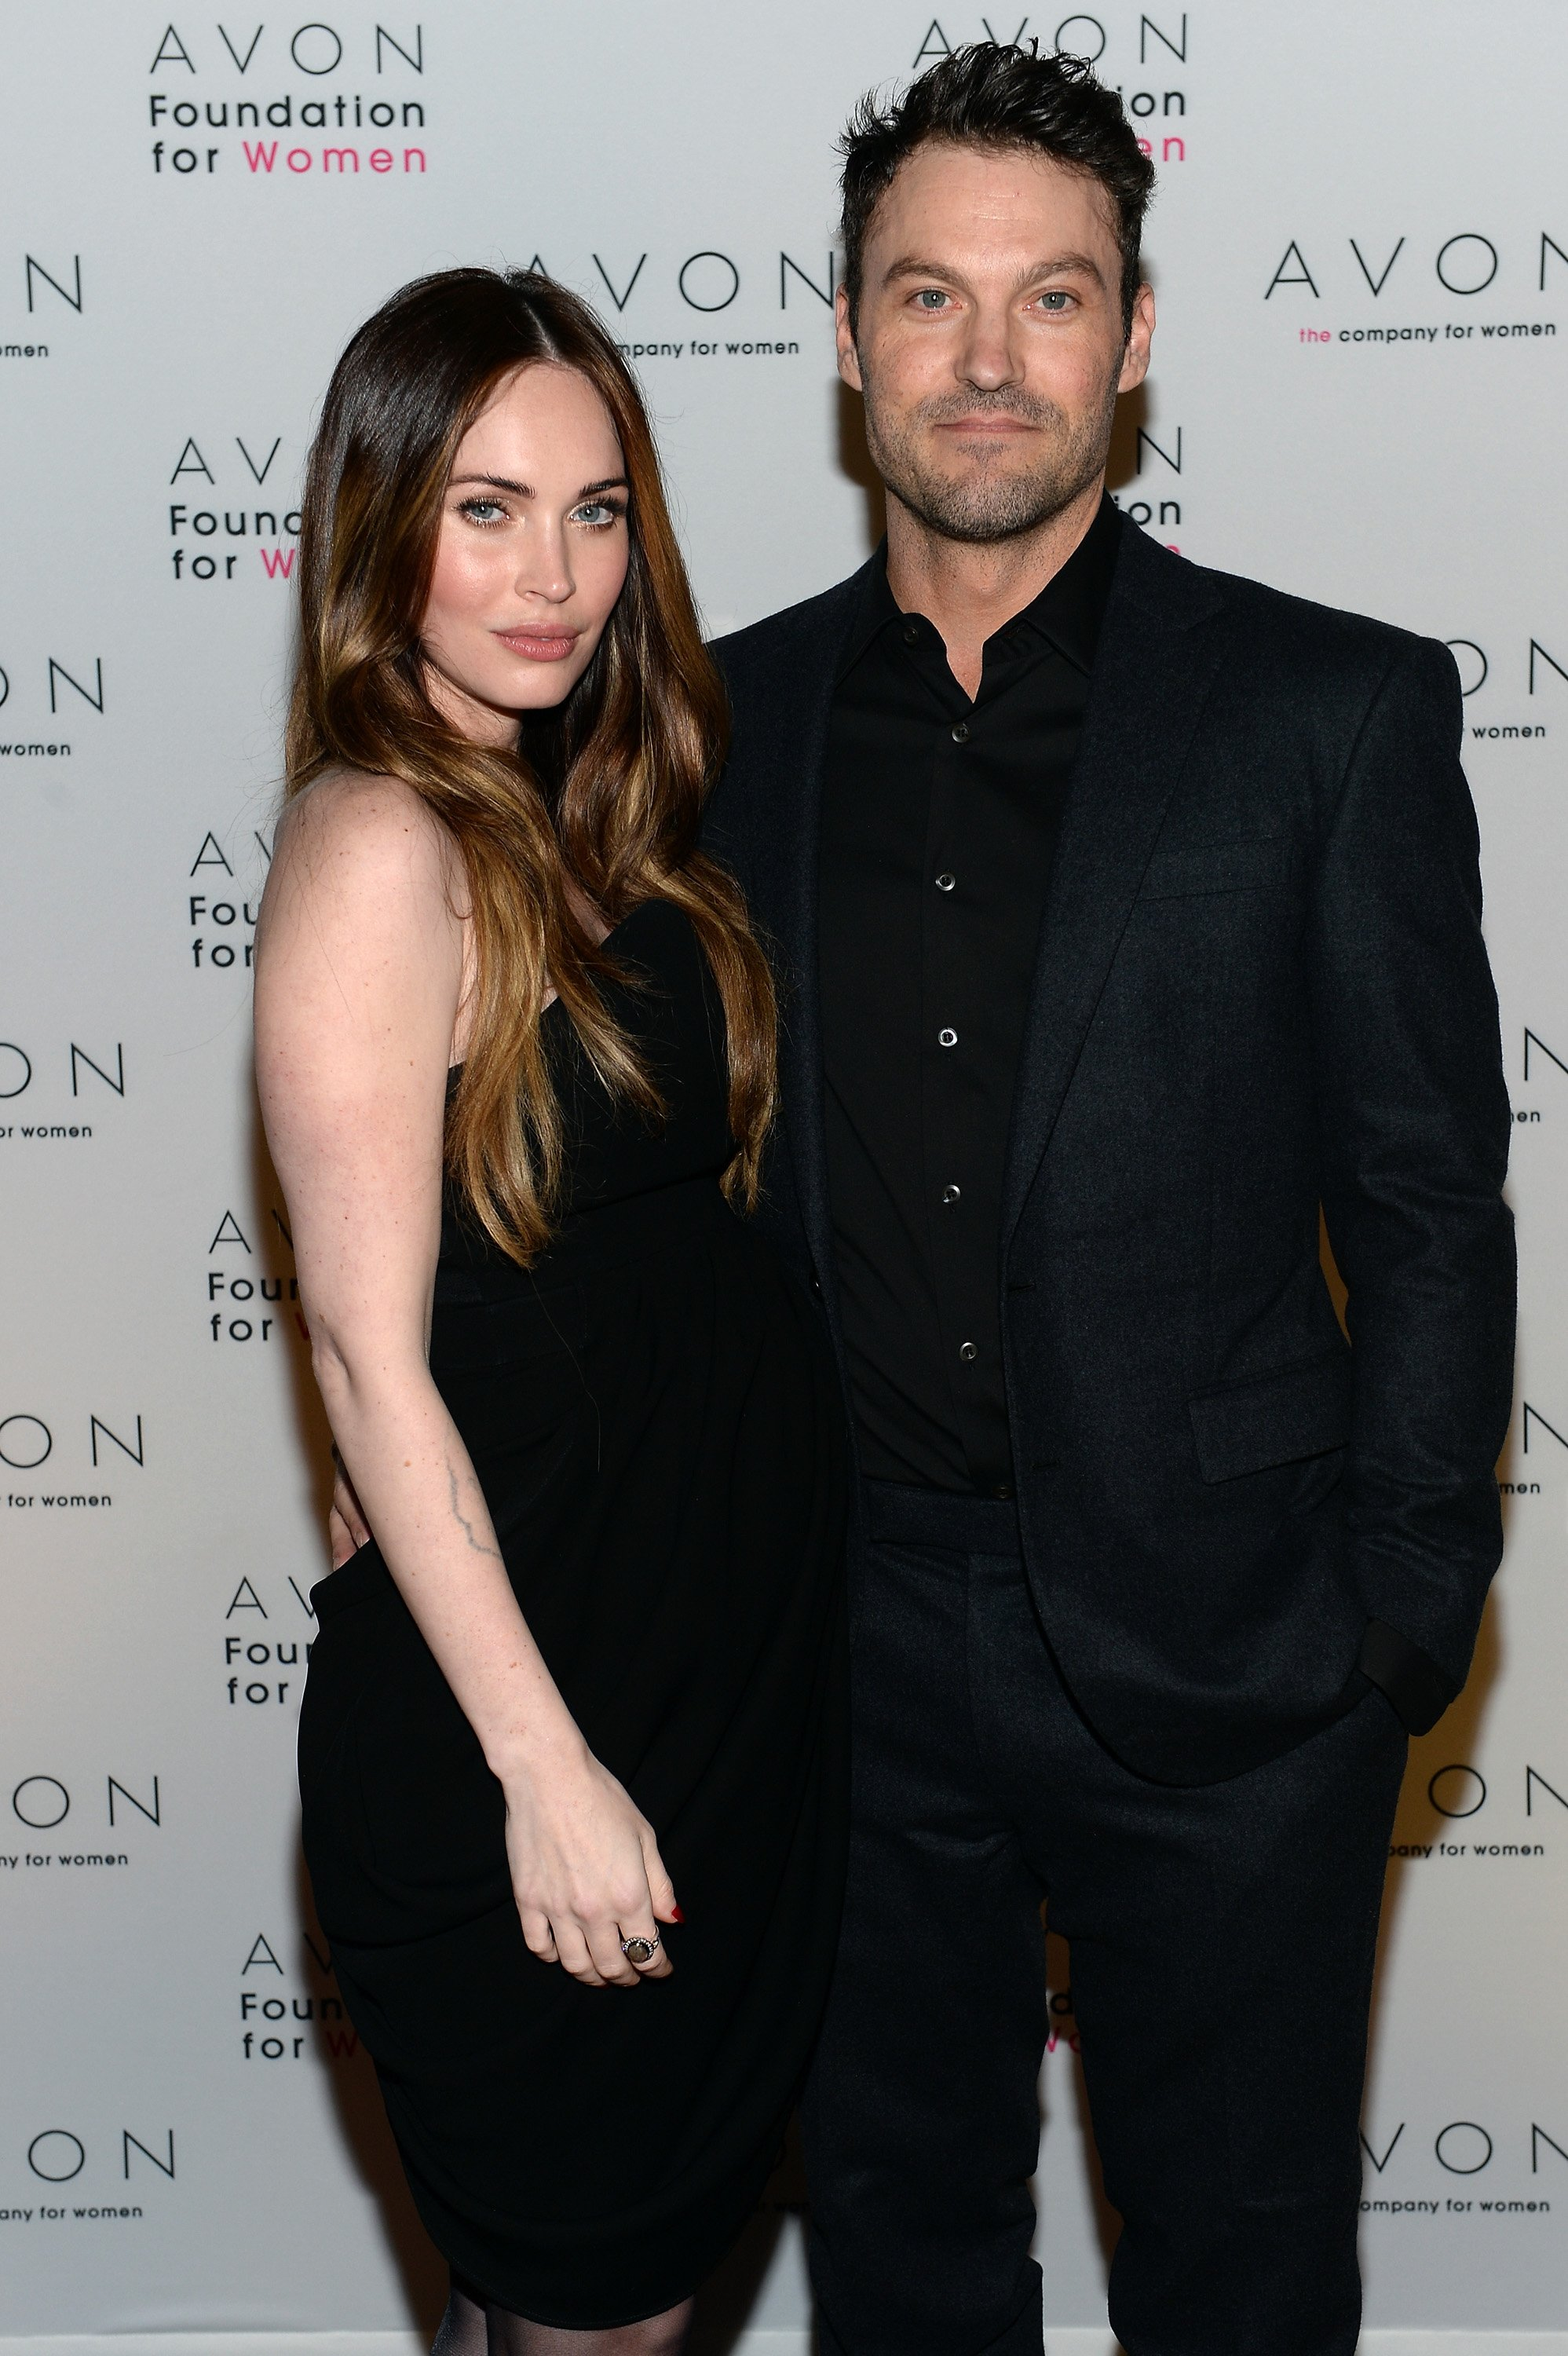 Image Credits: Getty Images | Megan Fox is the only one allowed to have affairs